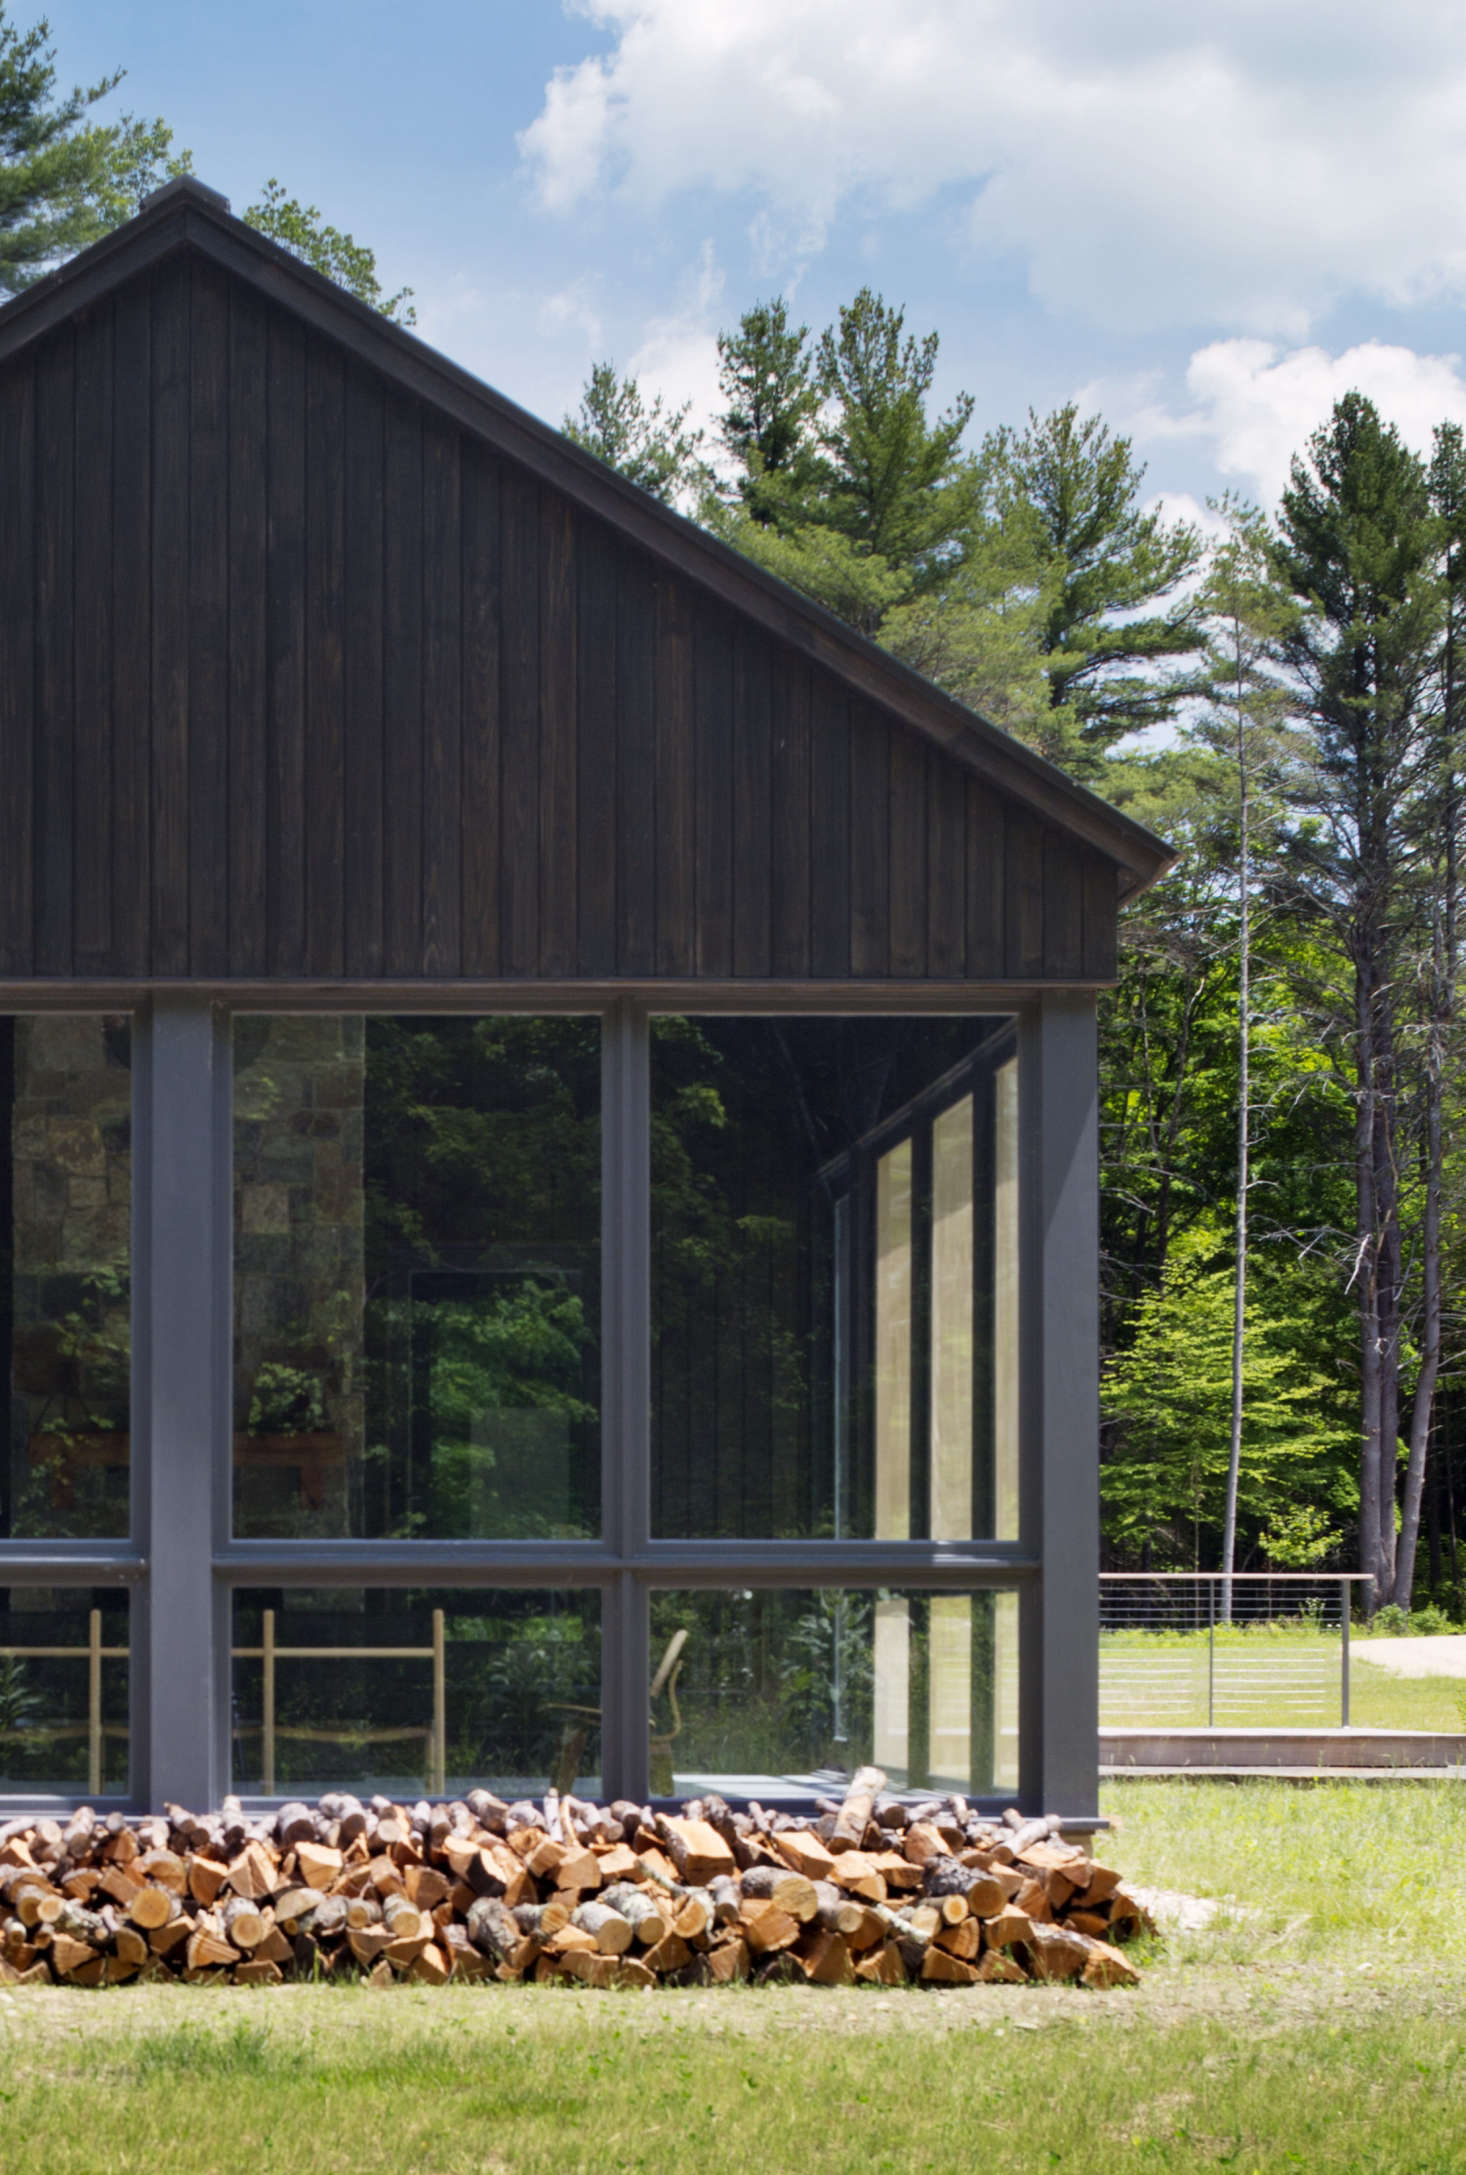 The porch (of stained cypress) at Undermountain, a barn-style house in the Berkshires by O'Neill Rose Architects